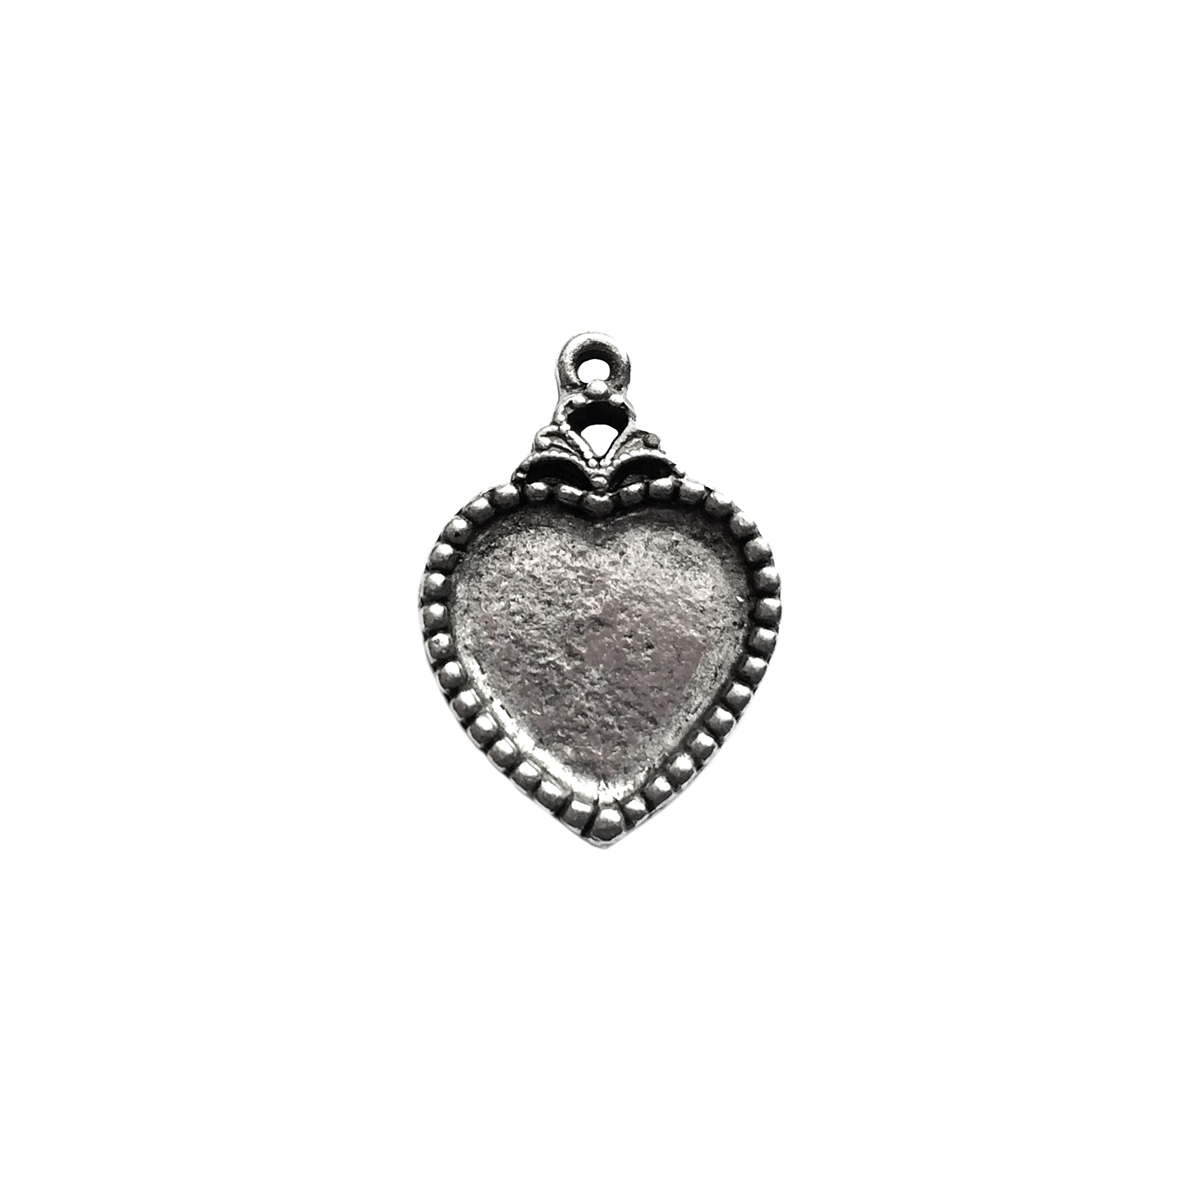 charm vintage sue b old mount pendants castings necklace larger email a friend heart p htm by silver pewter photo